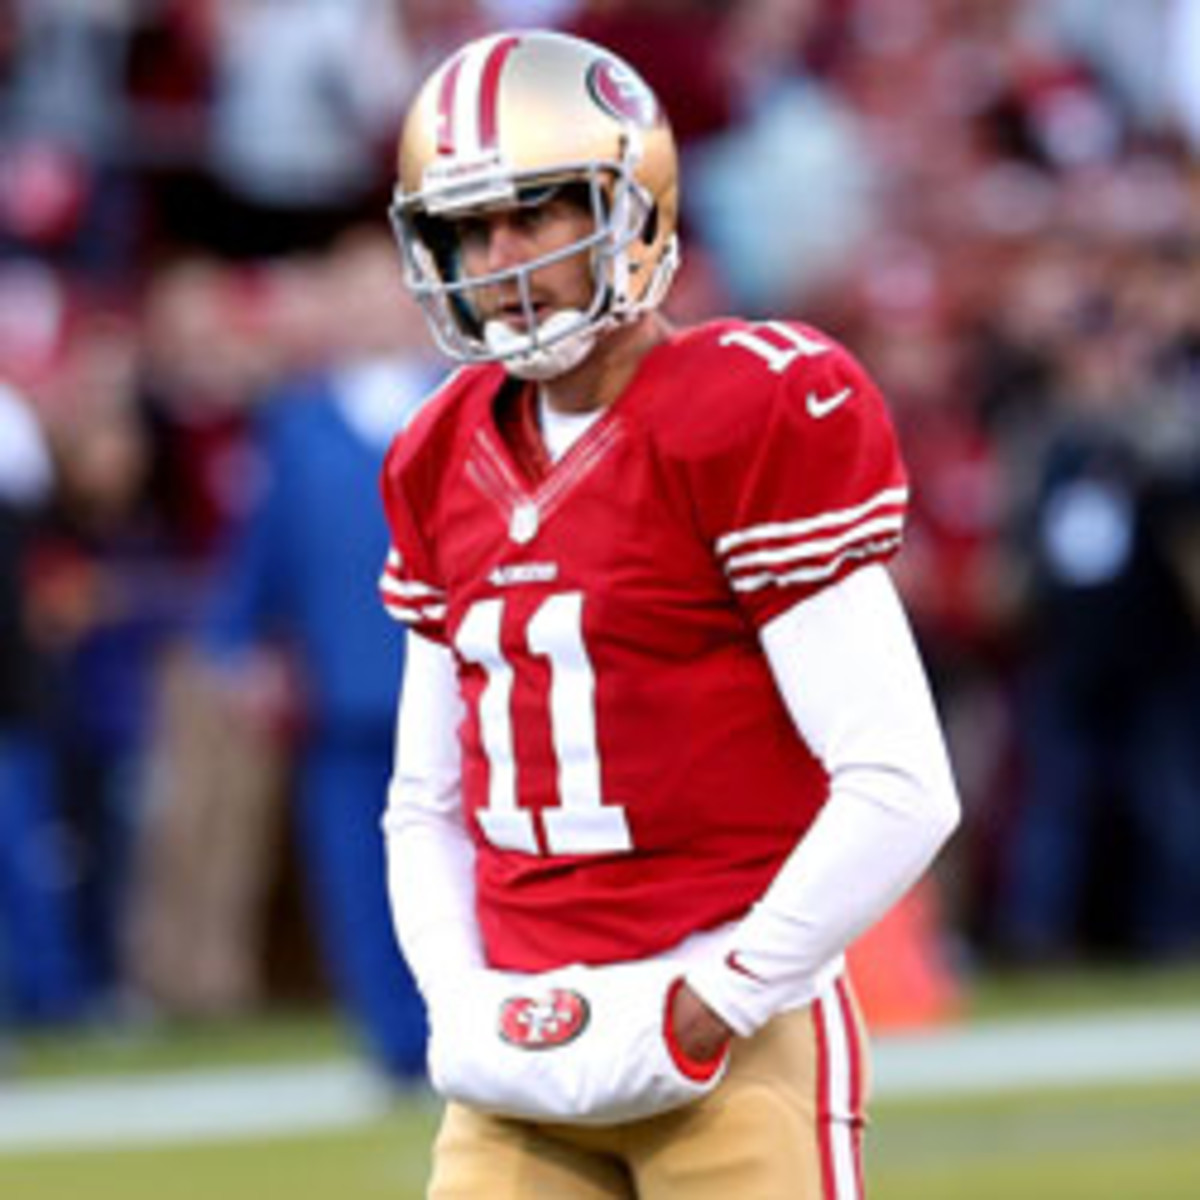 The 49ers have agreed to trade Alex Smith to the Chiefs. (Stephen Dunn/Getty Images Sport)